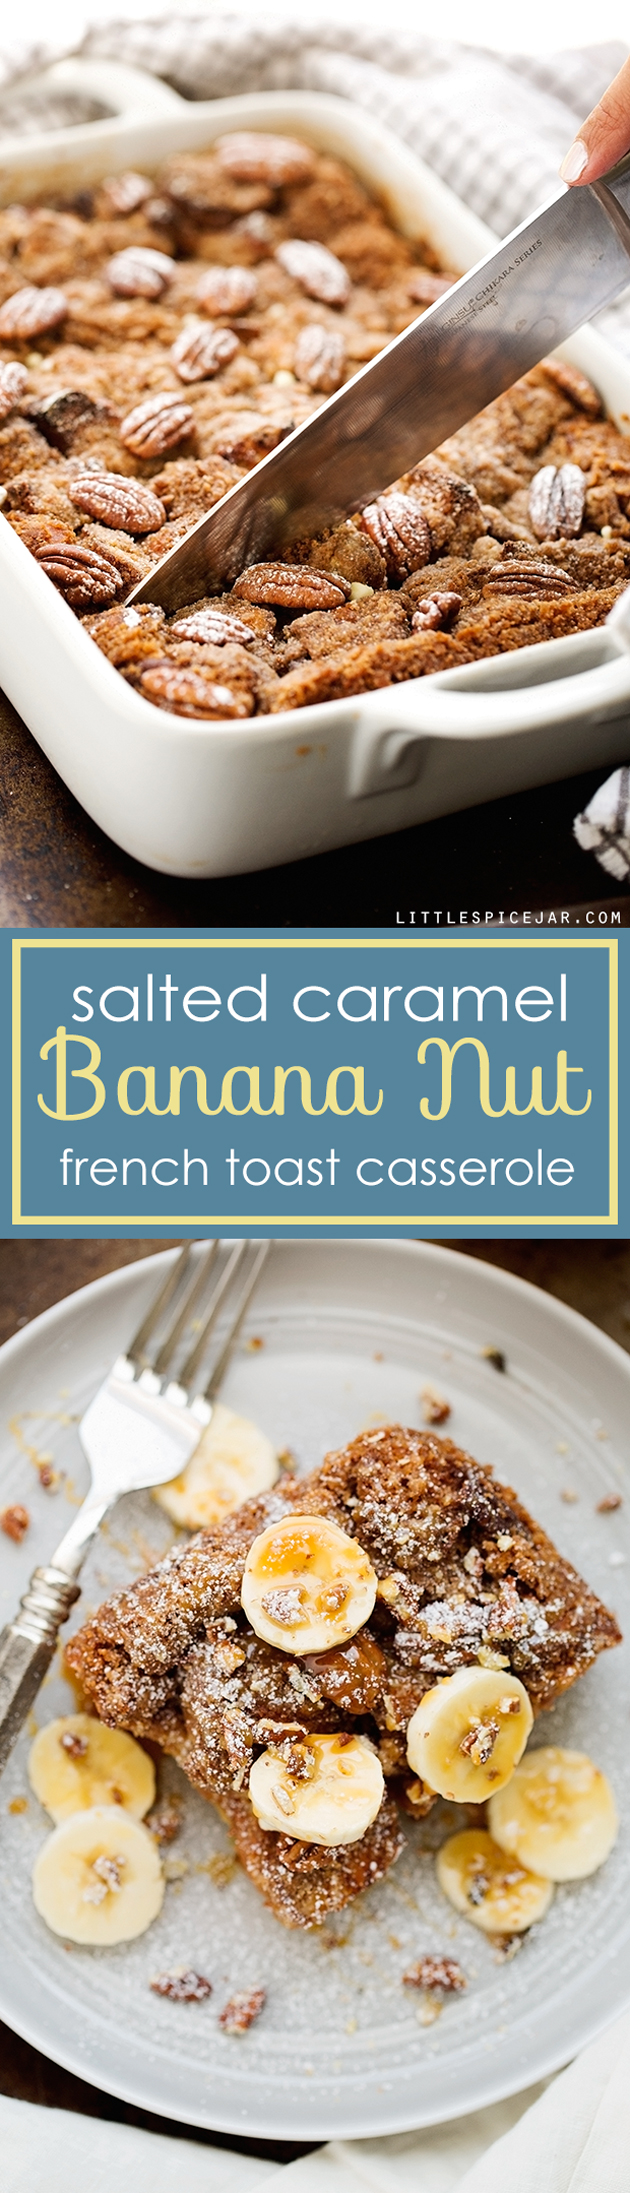 Salted Caramel Banana Nut French Toast Casserole  This Recipe Is Super  Friendly To Make Ahead